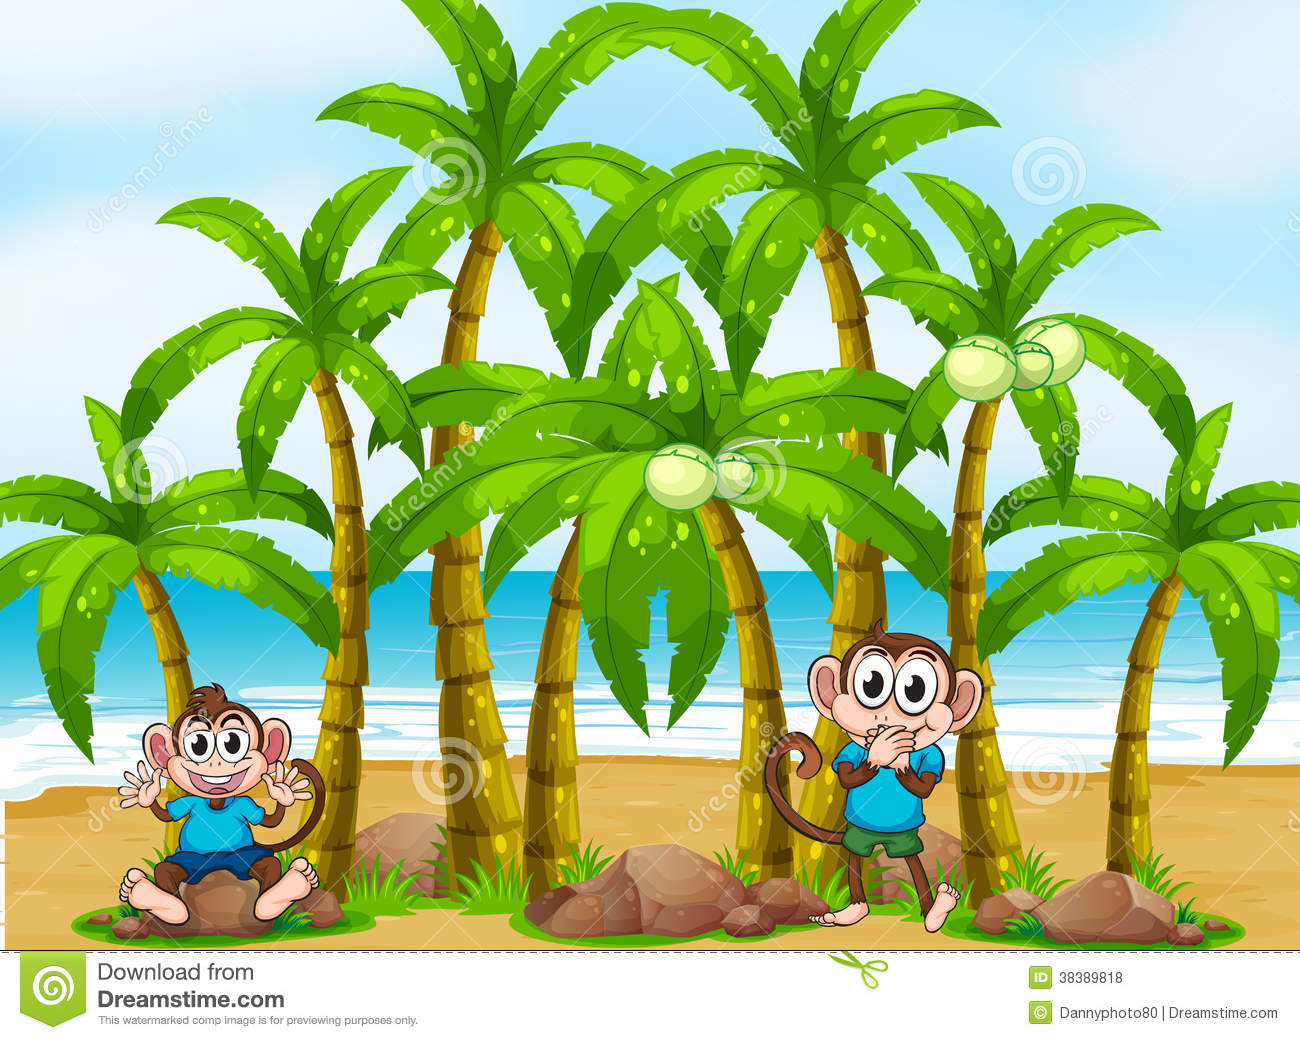 A beach with tall coconut trees